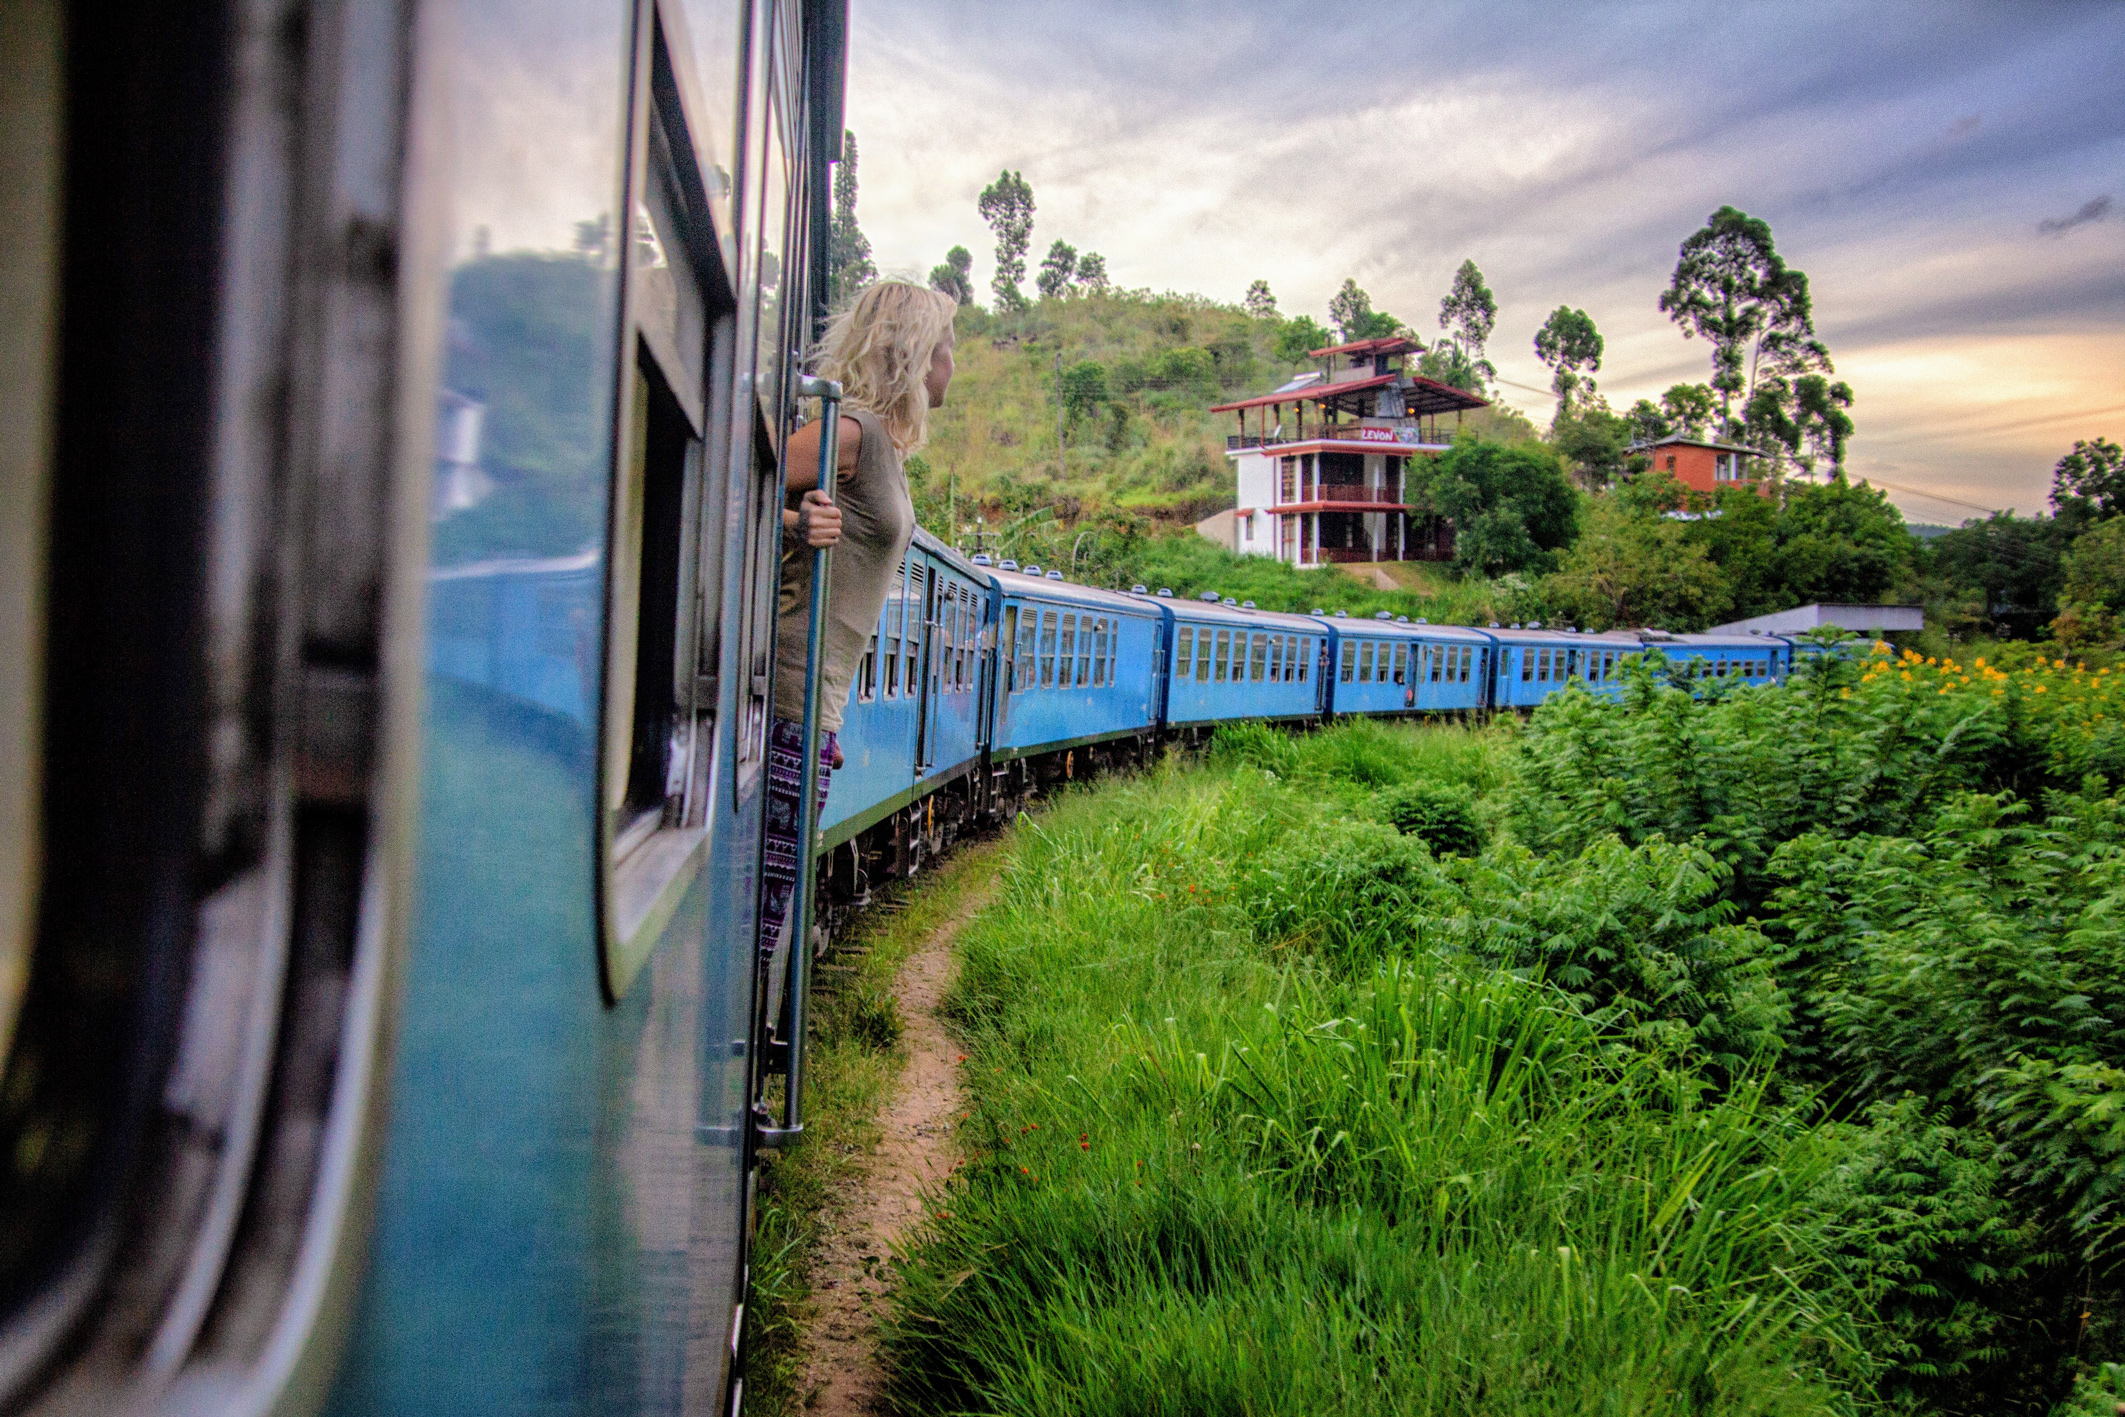 A girl getting the iconic shot on the train from Ella to Kandy in Sri Lanka.